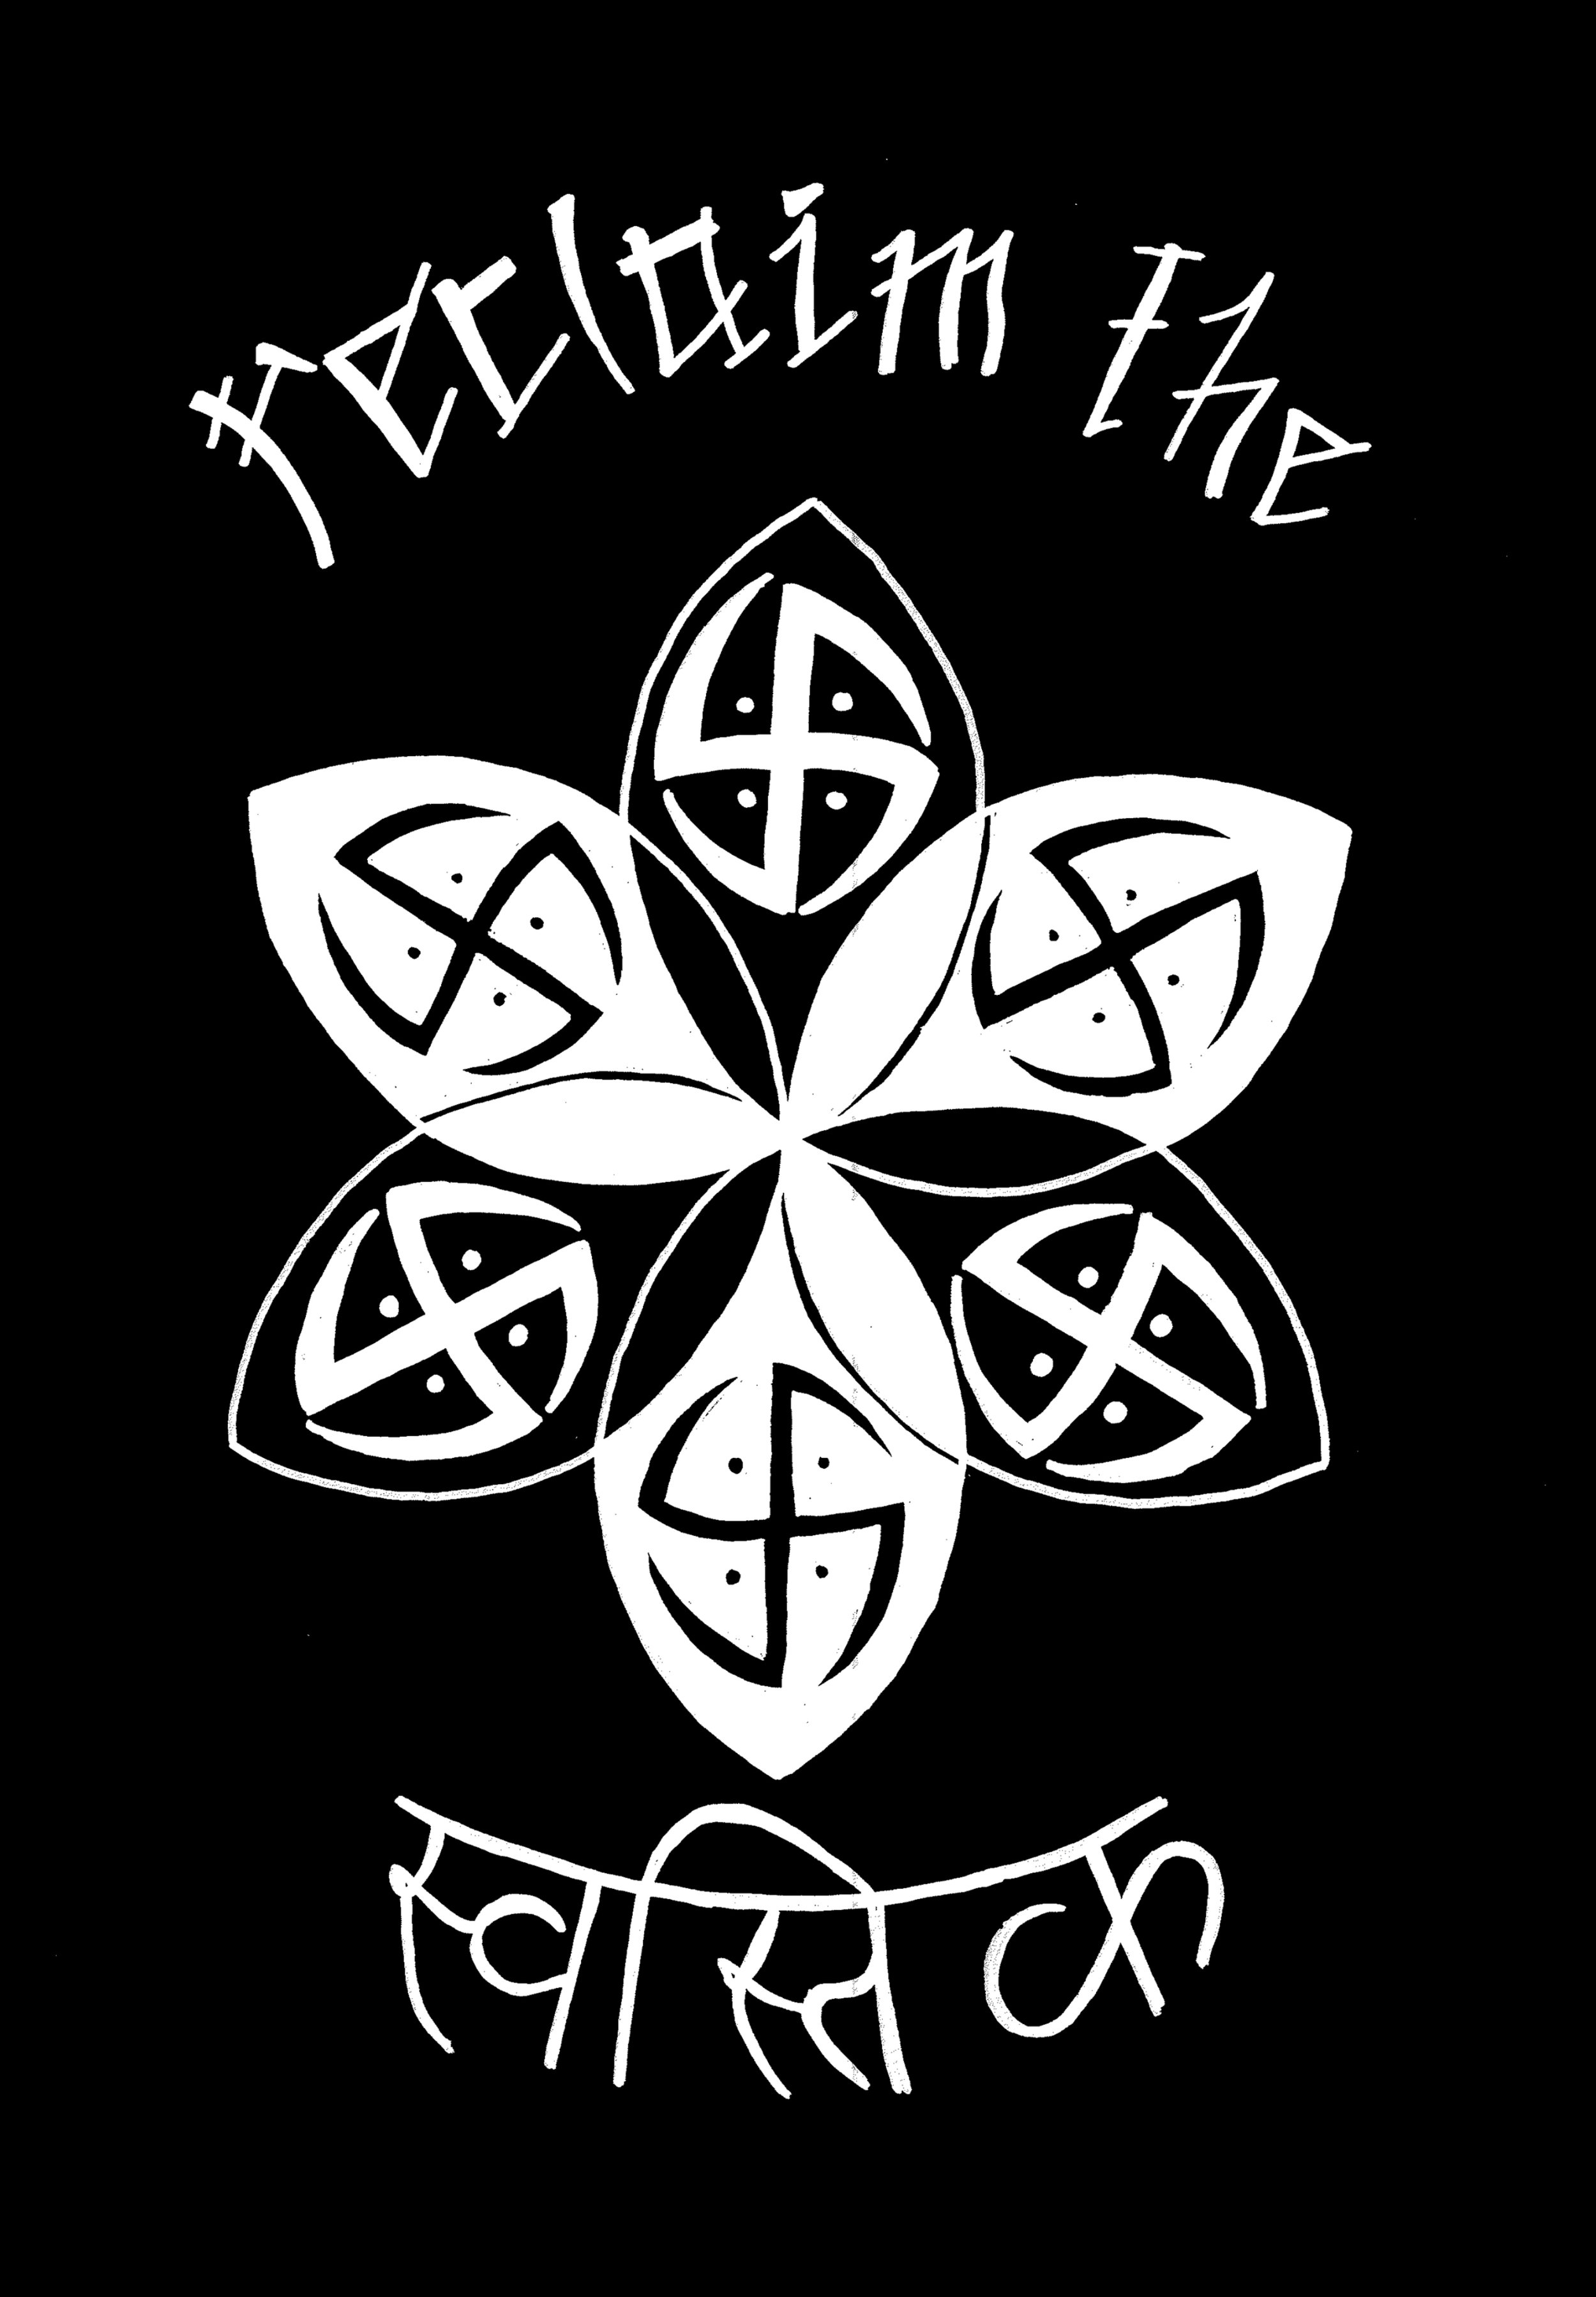 Reclaim the Swastika Poster  €9.99–€14.99 Available in A4, A3